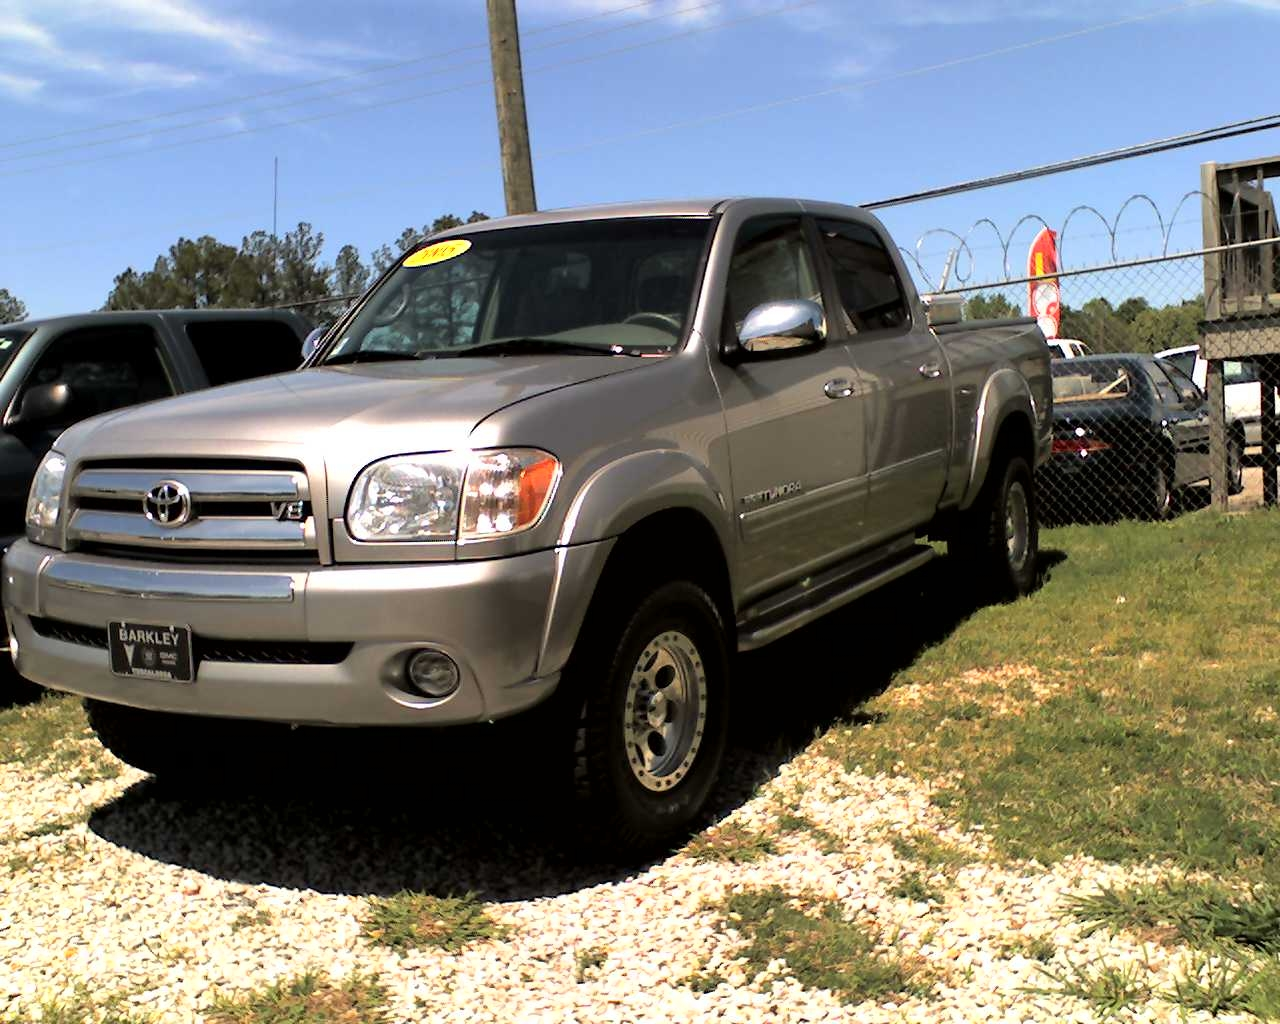 05uadc 2005 toyota tundra double cabsr5 pickup 4d 6 1 4 ft specs photos modification info at. Black Bedroom Furniture Sets. Home Design Ideas